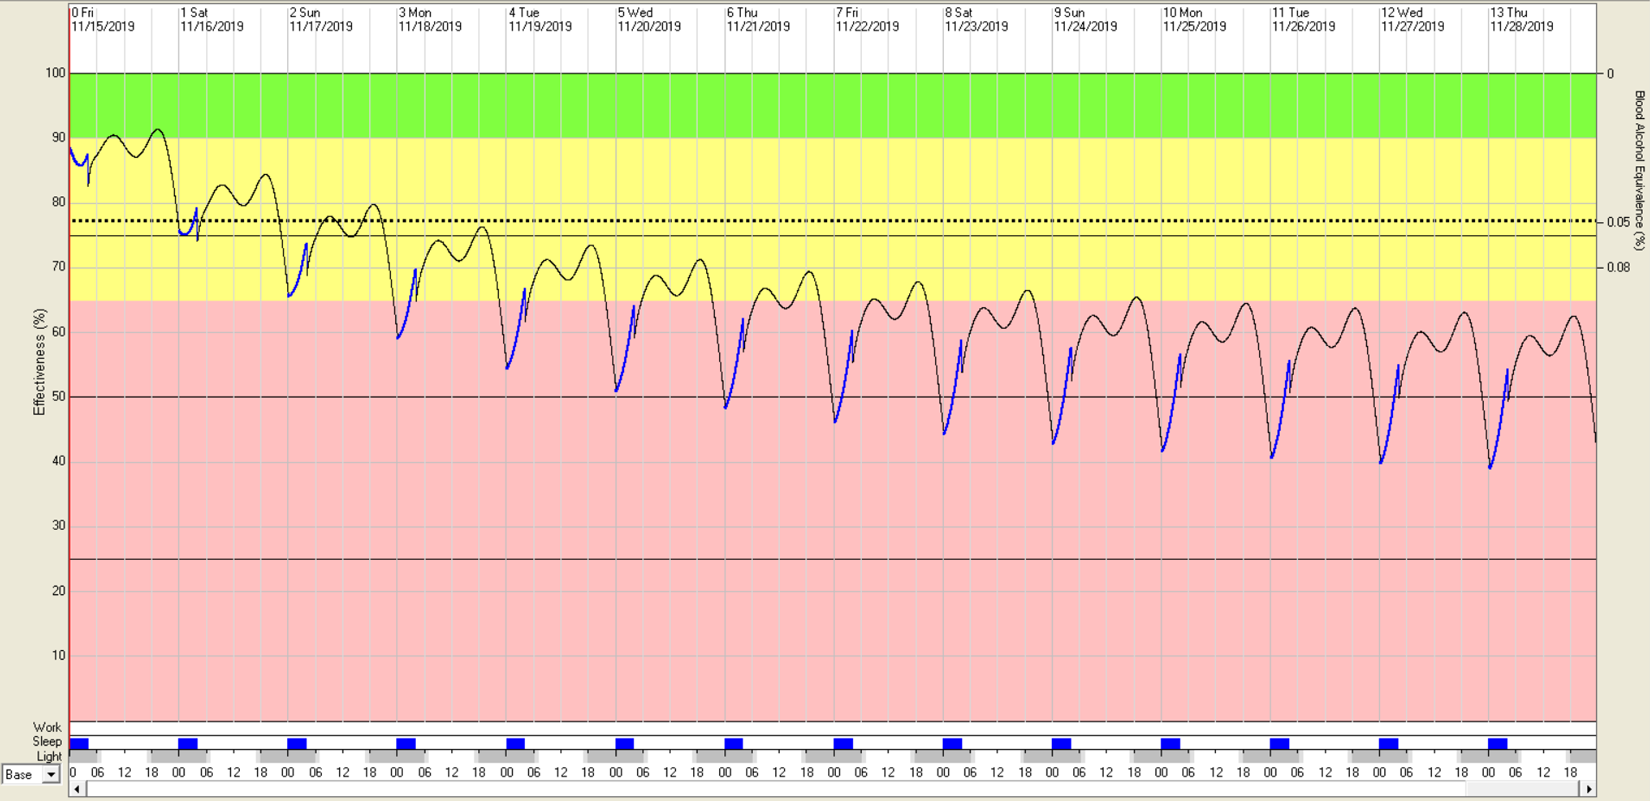 FAST graph example showing how 4 hours of sleep affects effectiveness